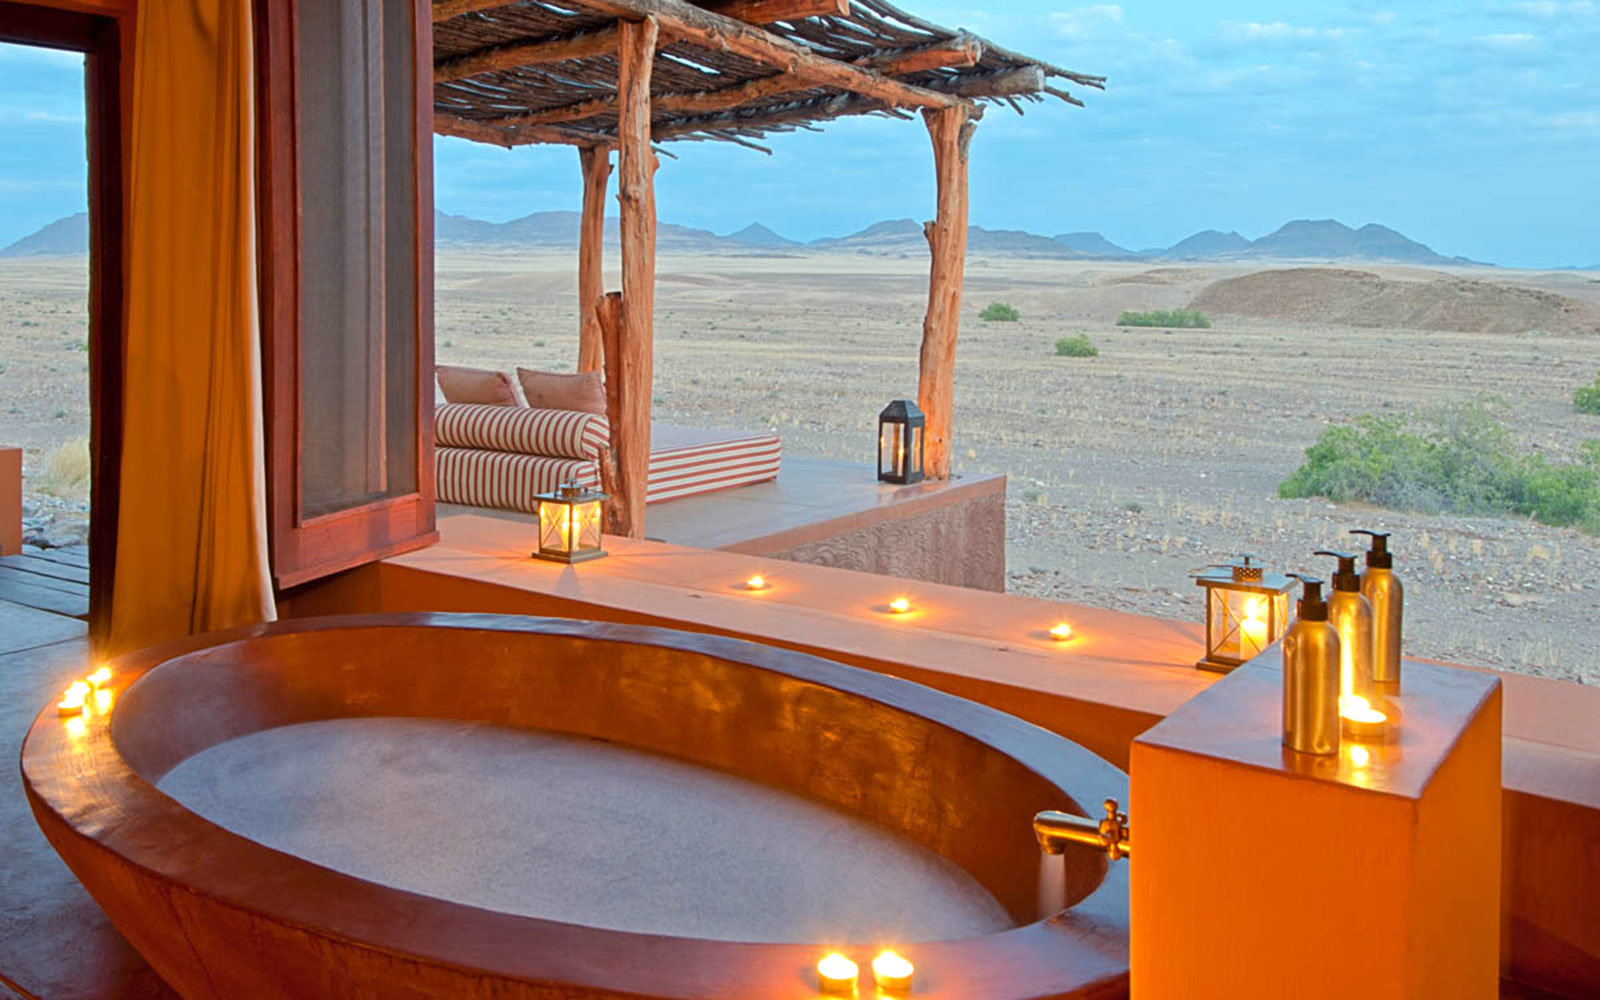 Okahirongo Elephant Lodge Outdoor Bathtub